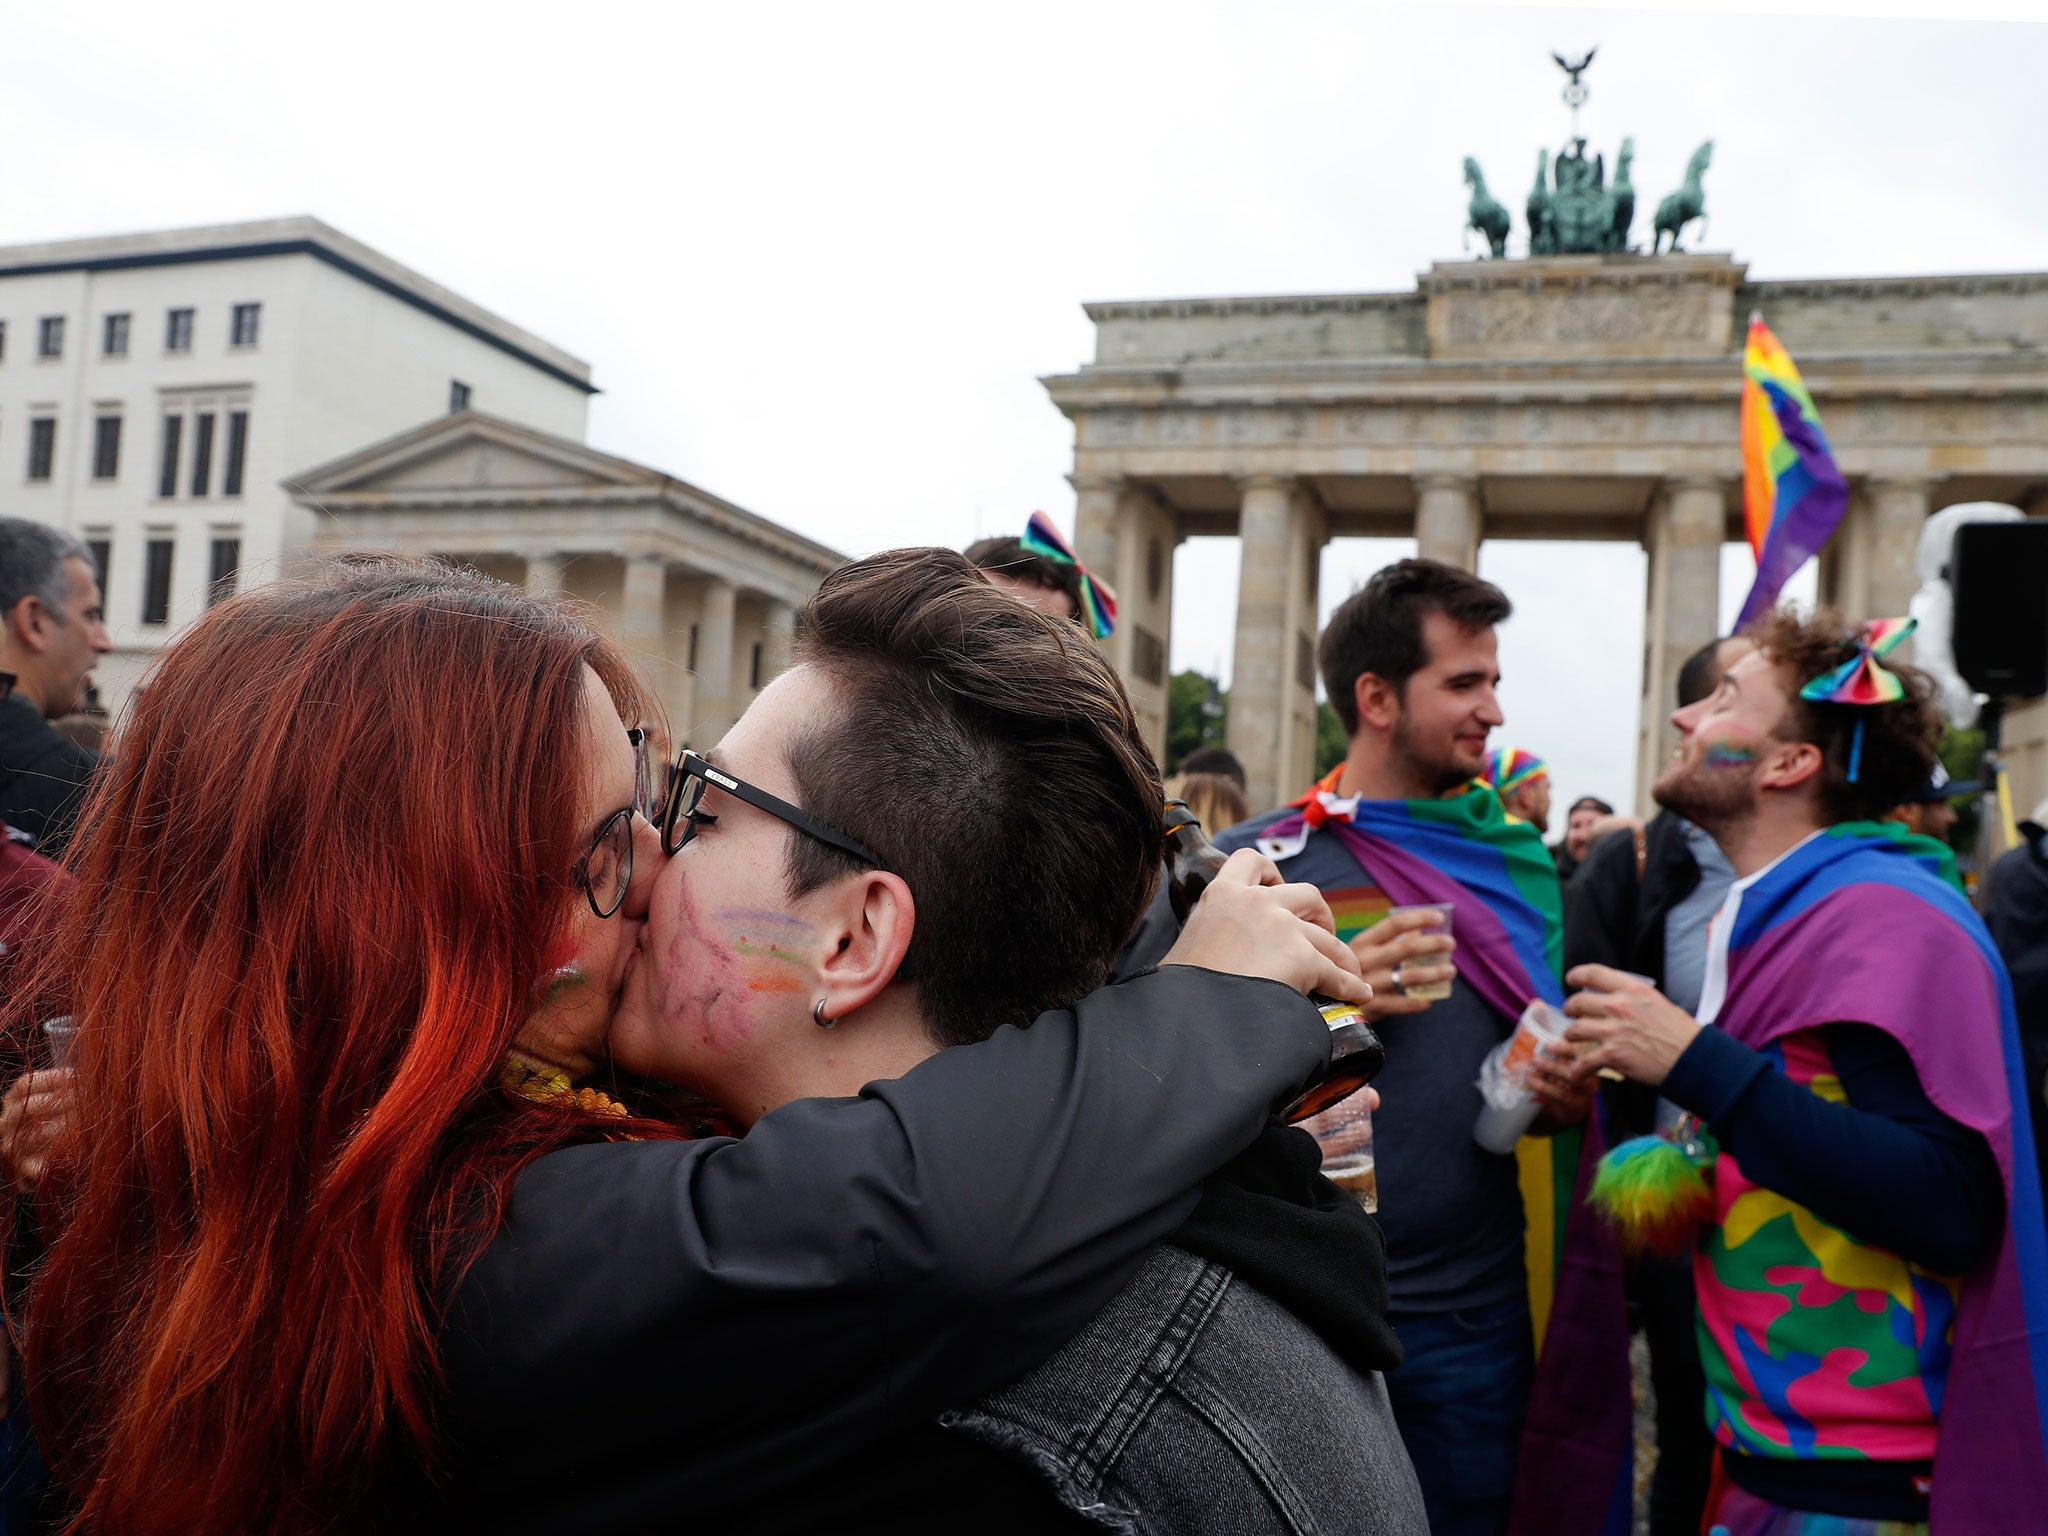 dating and marriage in germany